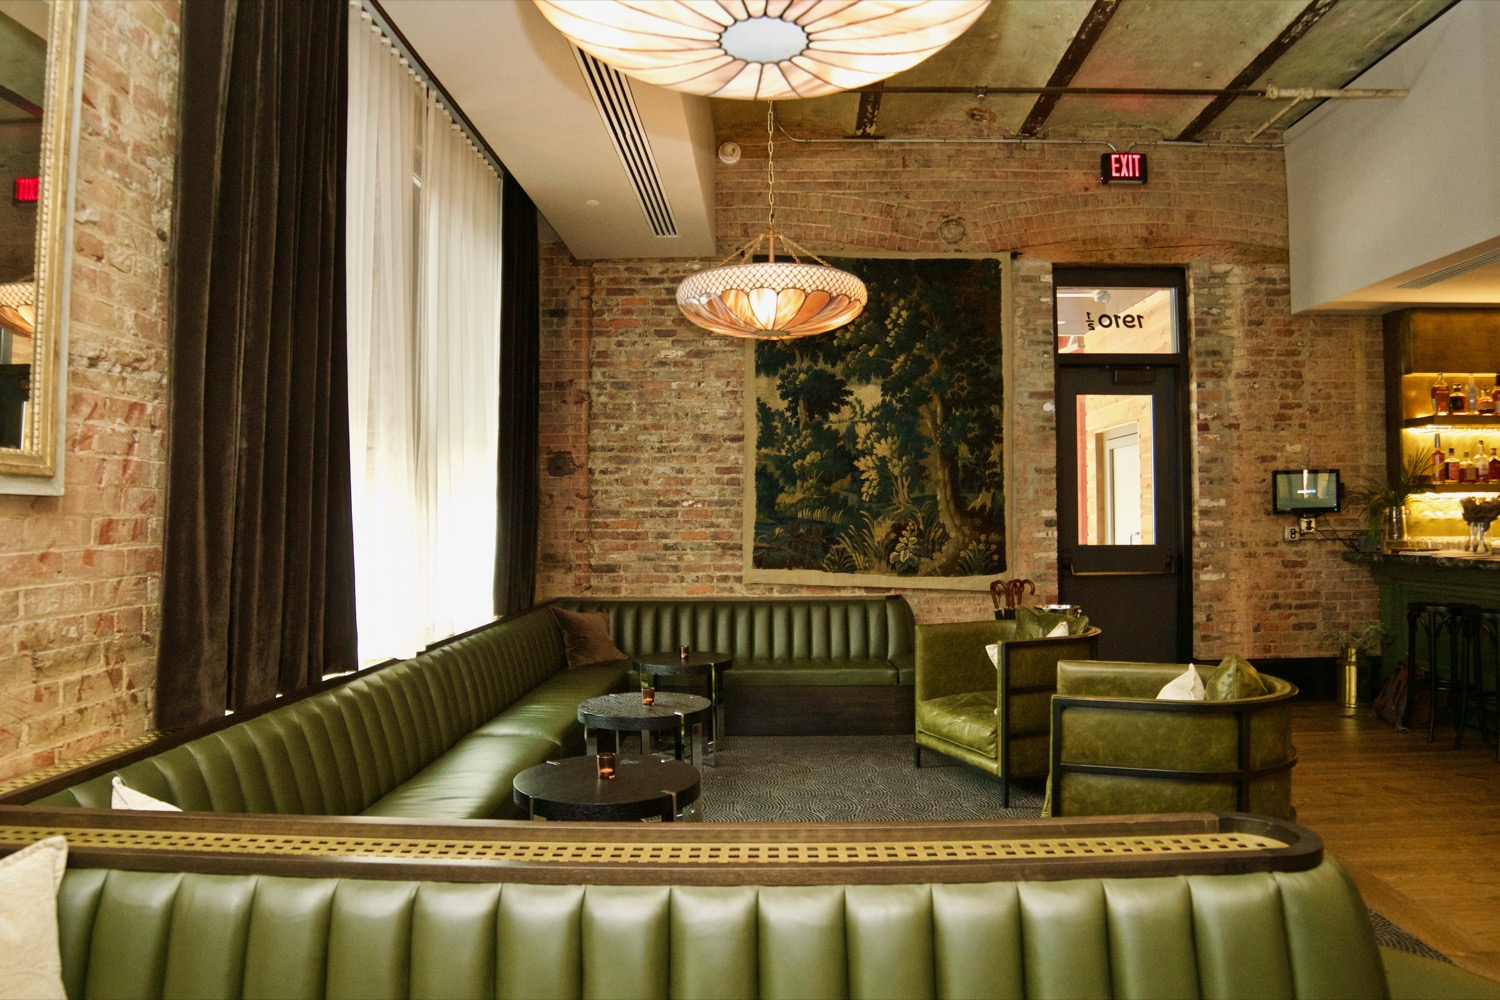 "Pictured: The bar/lounge area at Sartre from the story ""French Existentialism Hits Cincinnati With Sartre, OTR's Coolest New Restaurant"" / Image: Brian Planalp // Published: 12.31.17"